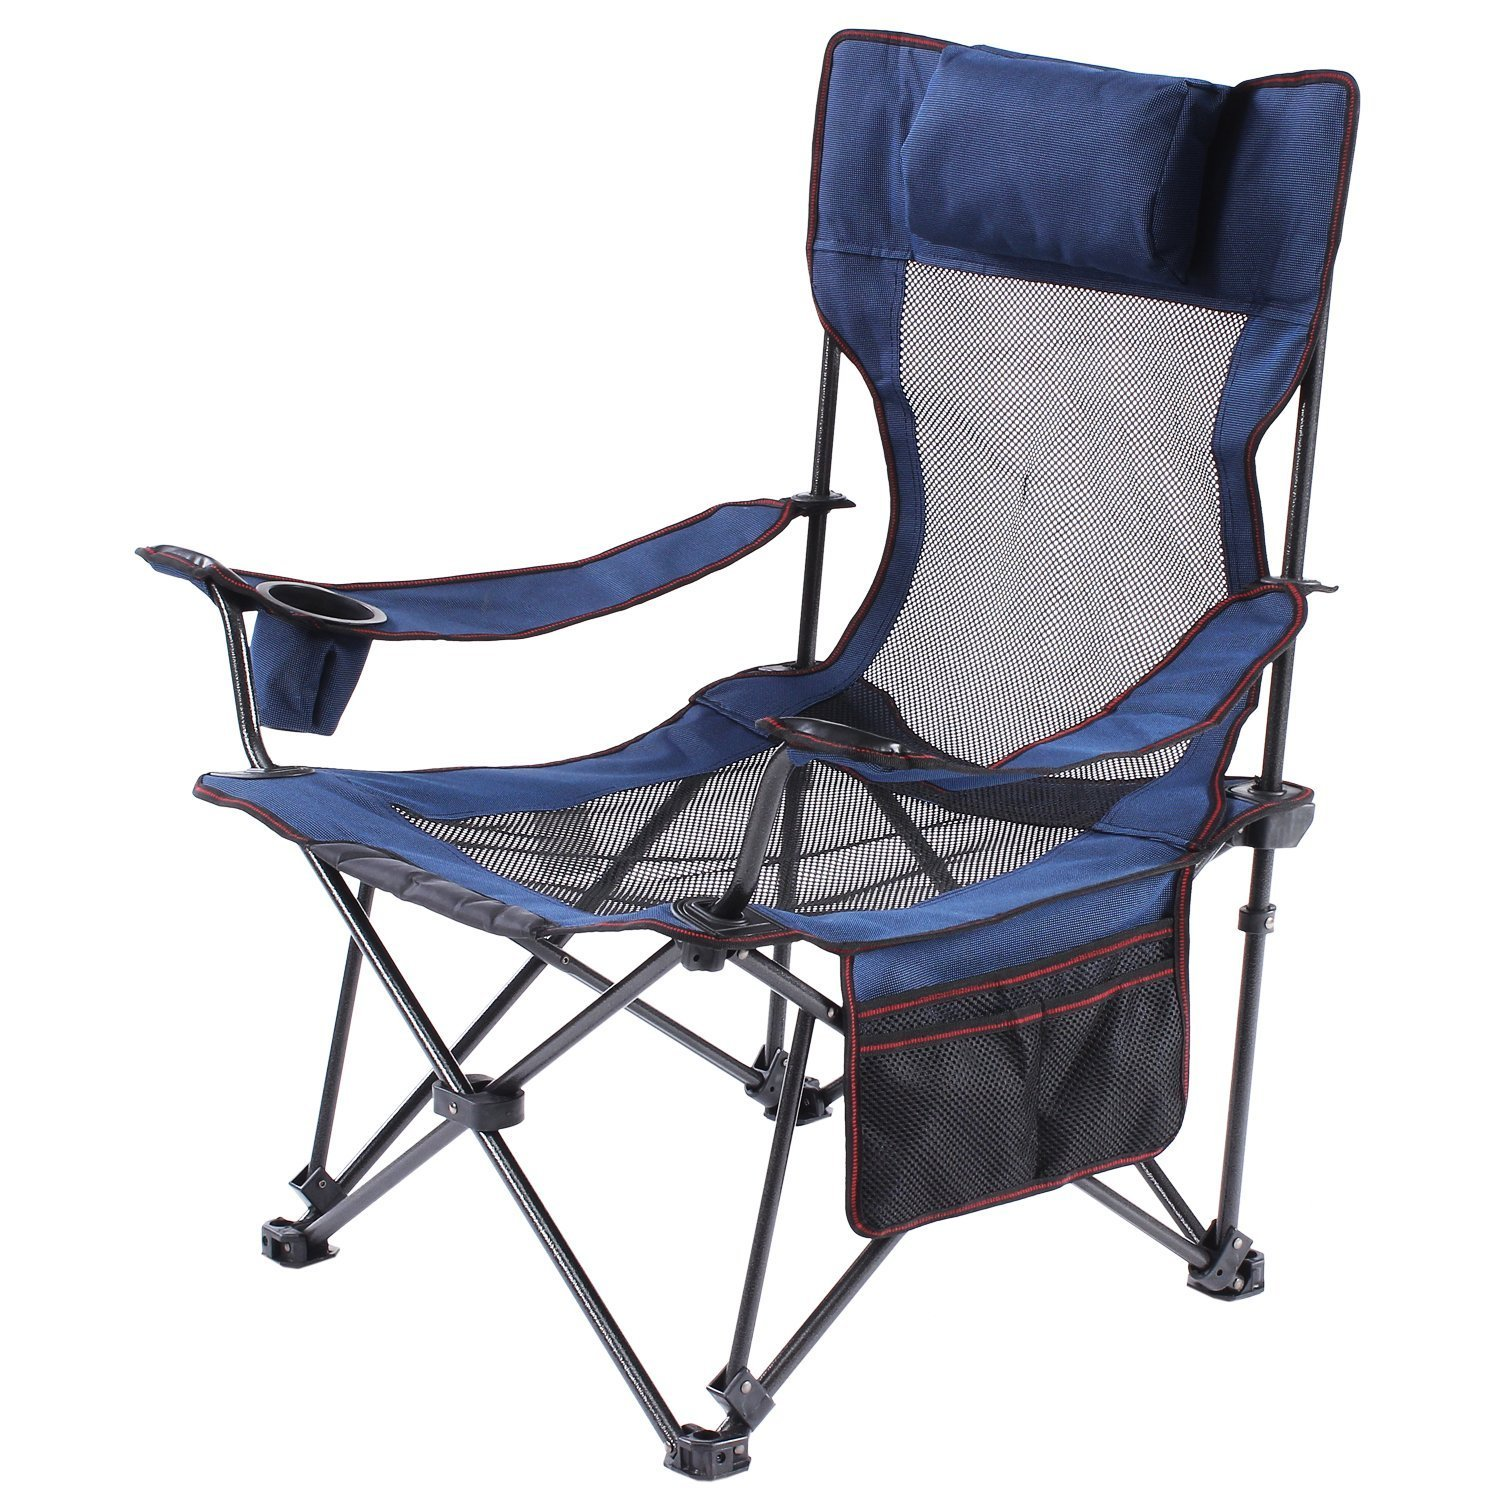 Folding Quad Chair Lumbar Back Support Light Weight Portable Padded Oversize with Cooler and Armrest for Camp Carry Bag Included [並行輸入品] B075K4CW18